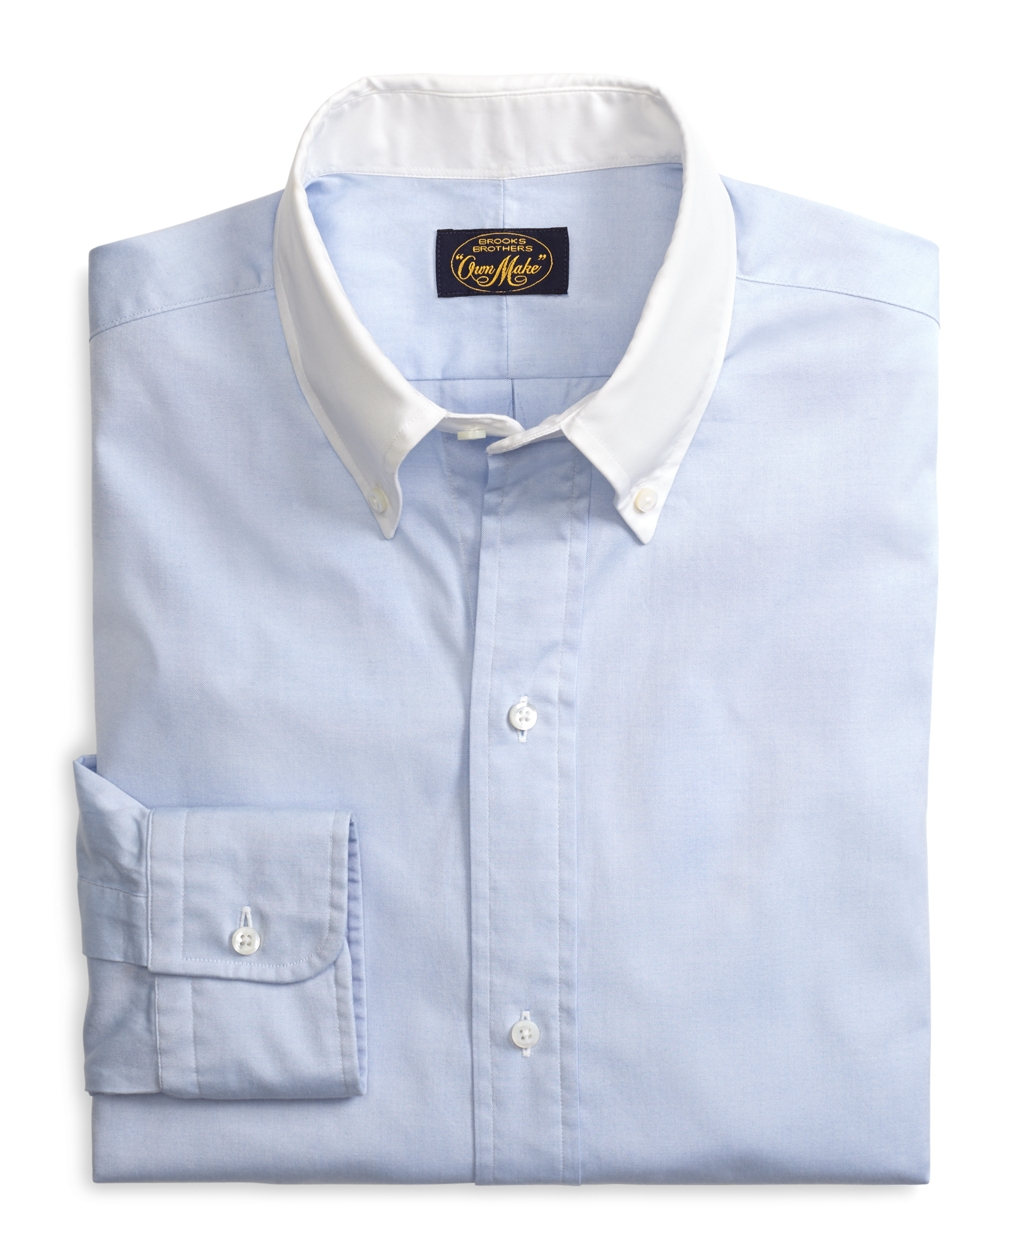 Brooks brothers own make blue pinpoint sport shirt in blue for Brooks brothers sports shirts